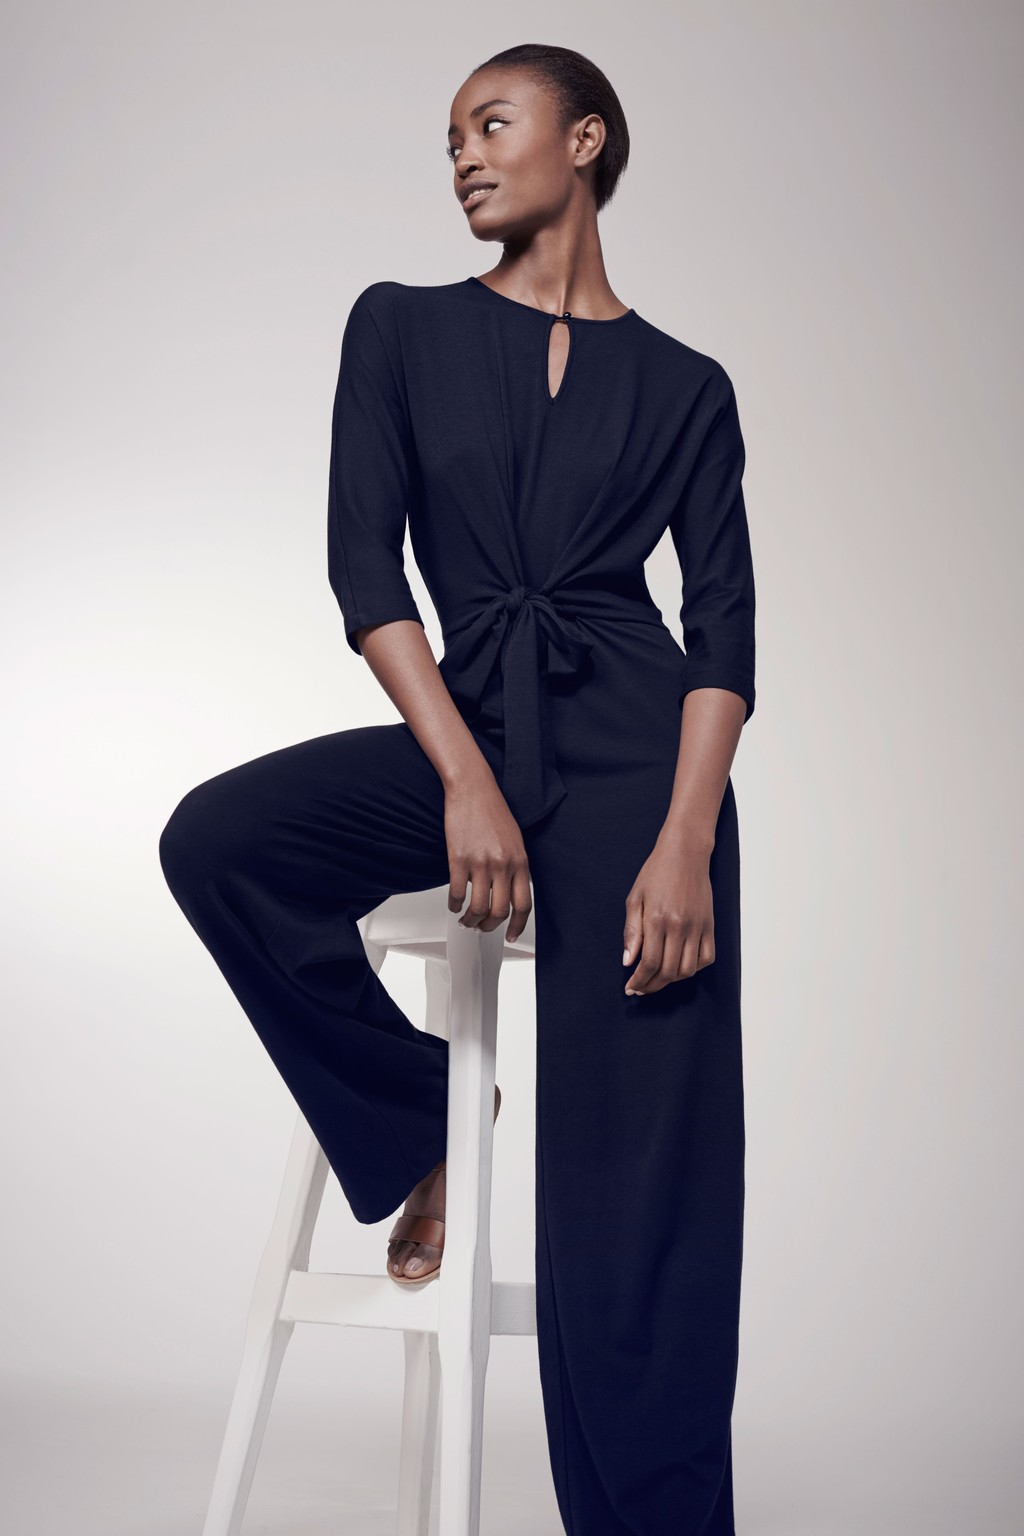 Tie Front Jumpsuit Navy - length: standard; fit: tailored/fitted; pattern: plain; waist detail: flattering waist detail; predominant colour: navy; occasions: evening, occasion; neckline: peep hole neckline; fibres: polyester/polyamide - 100%; sleeve length: 3/4 length; sleeve style: standard; style: jumpsuit; pattern type: fabric; texture group: jersey - stretchy/drapey; season: s/s 2016; wardrobe: event